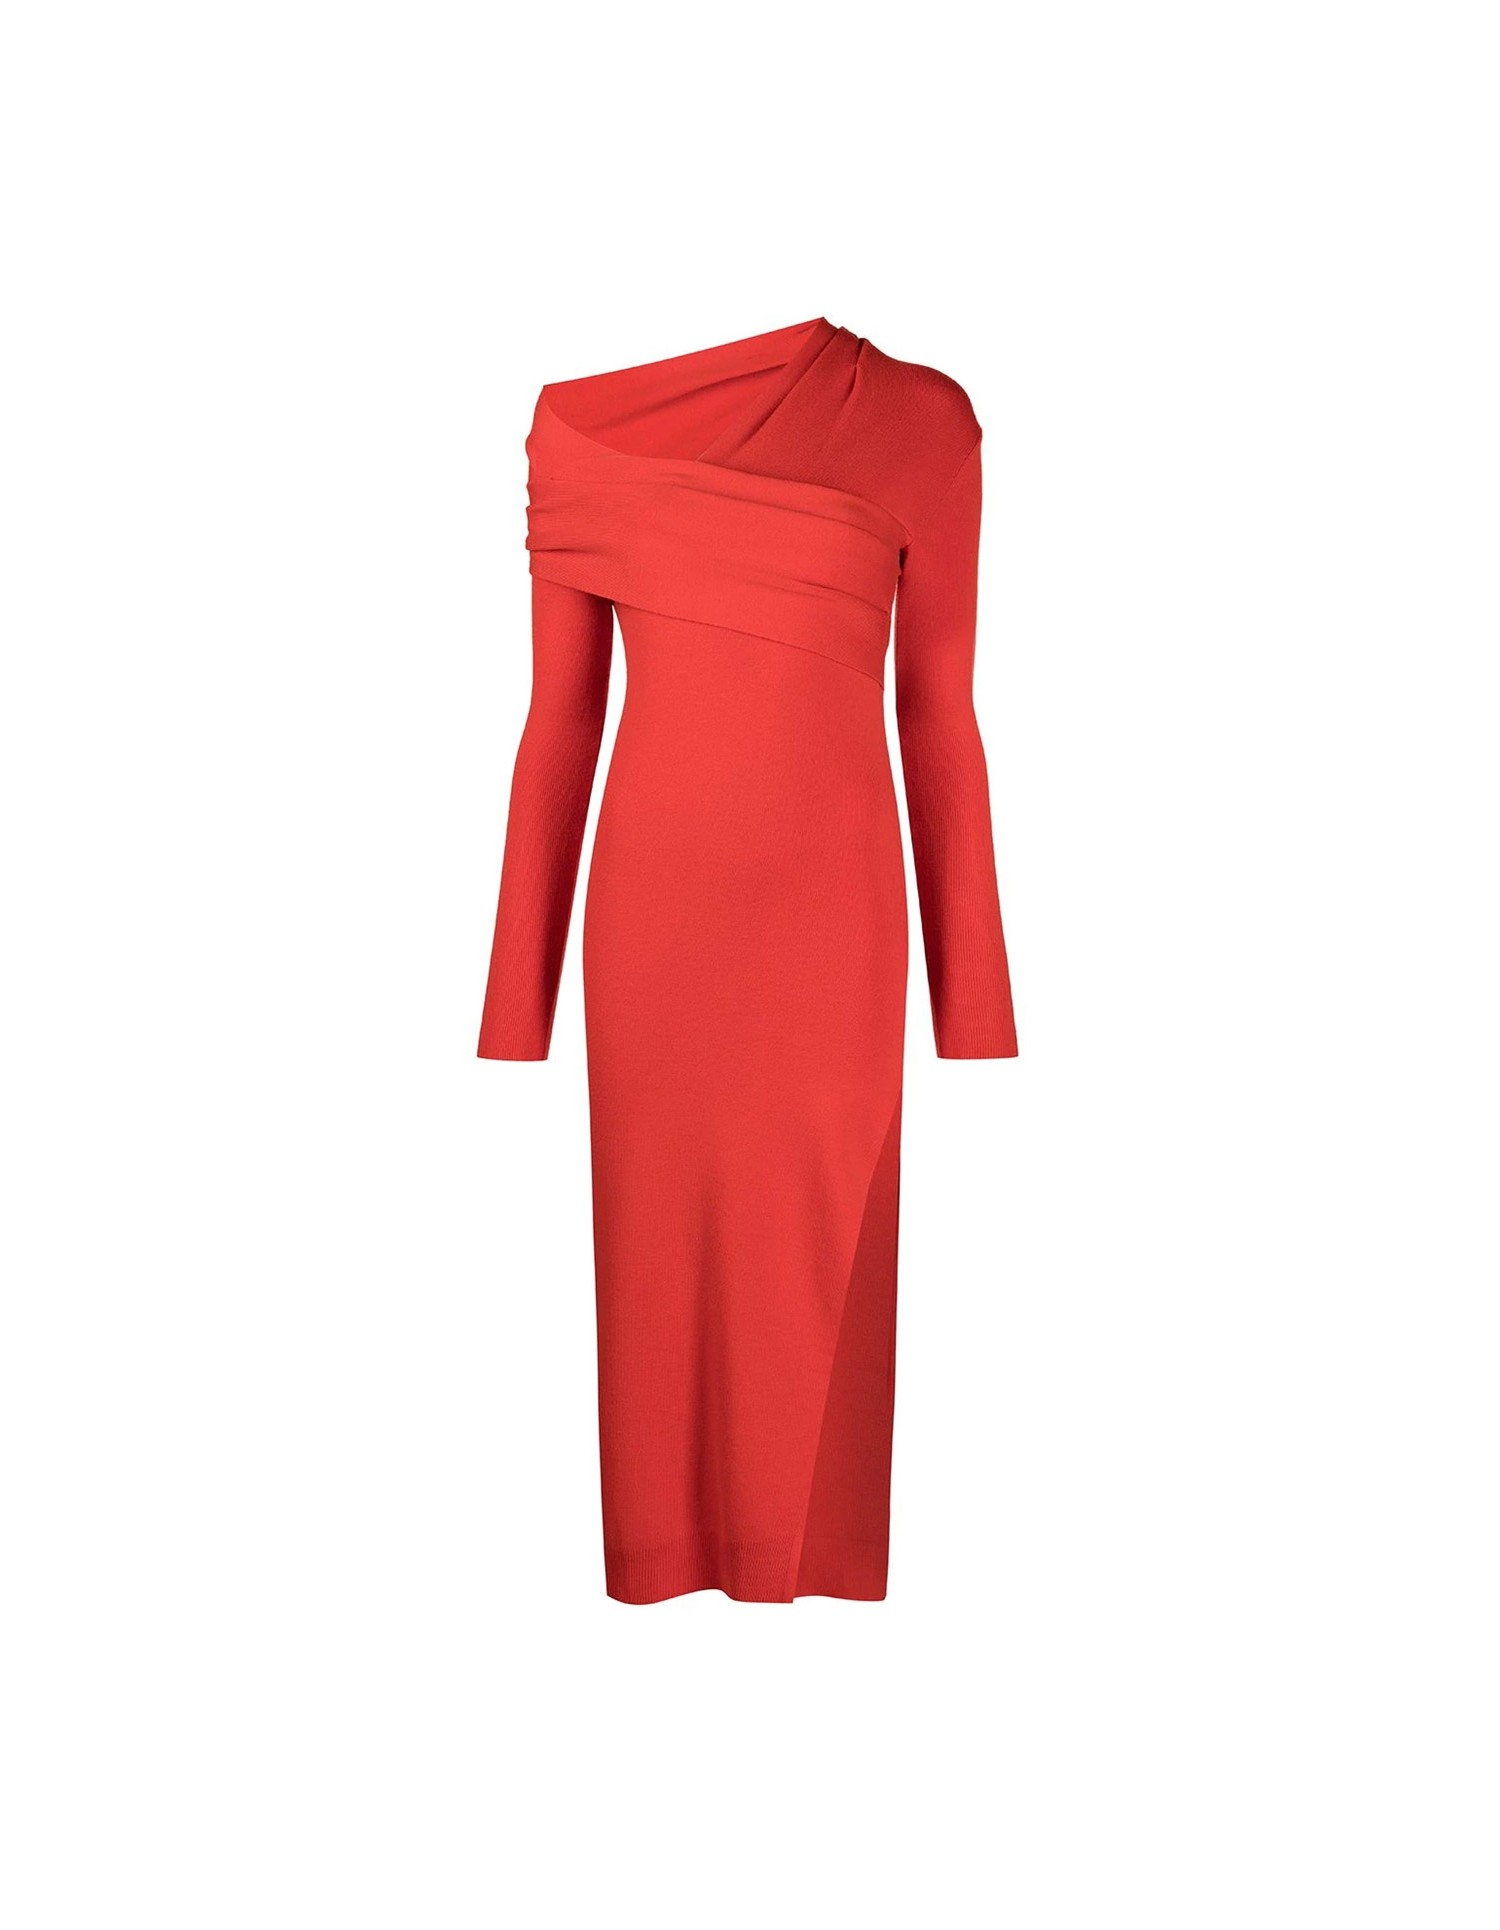 MONSE Twisted Wrap Collar Knit Dress in Code Red Flat Front